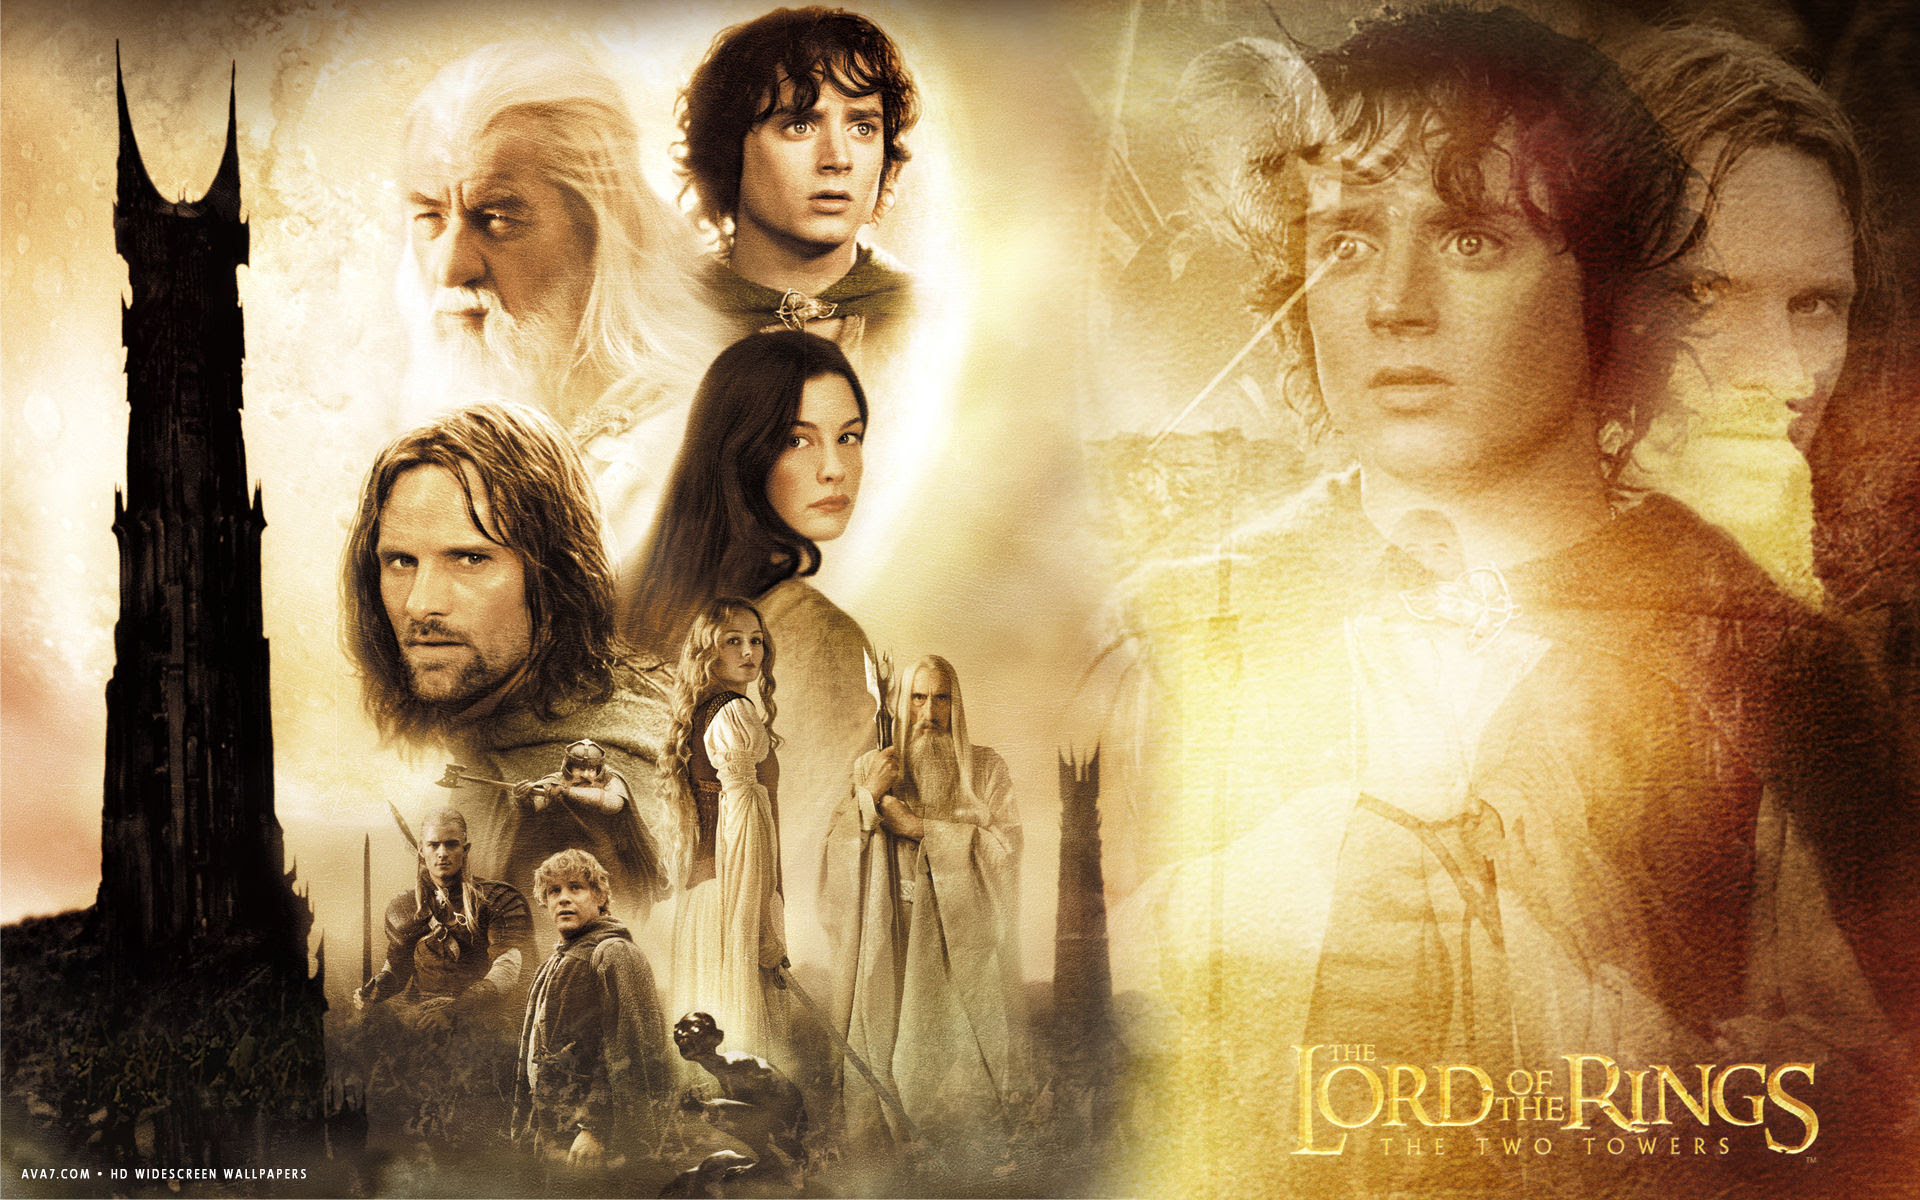 Lord Of The Rings The Two Towers Movie Hd Widescreen Wallpaper